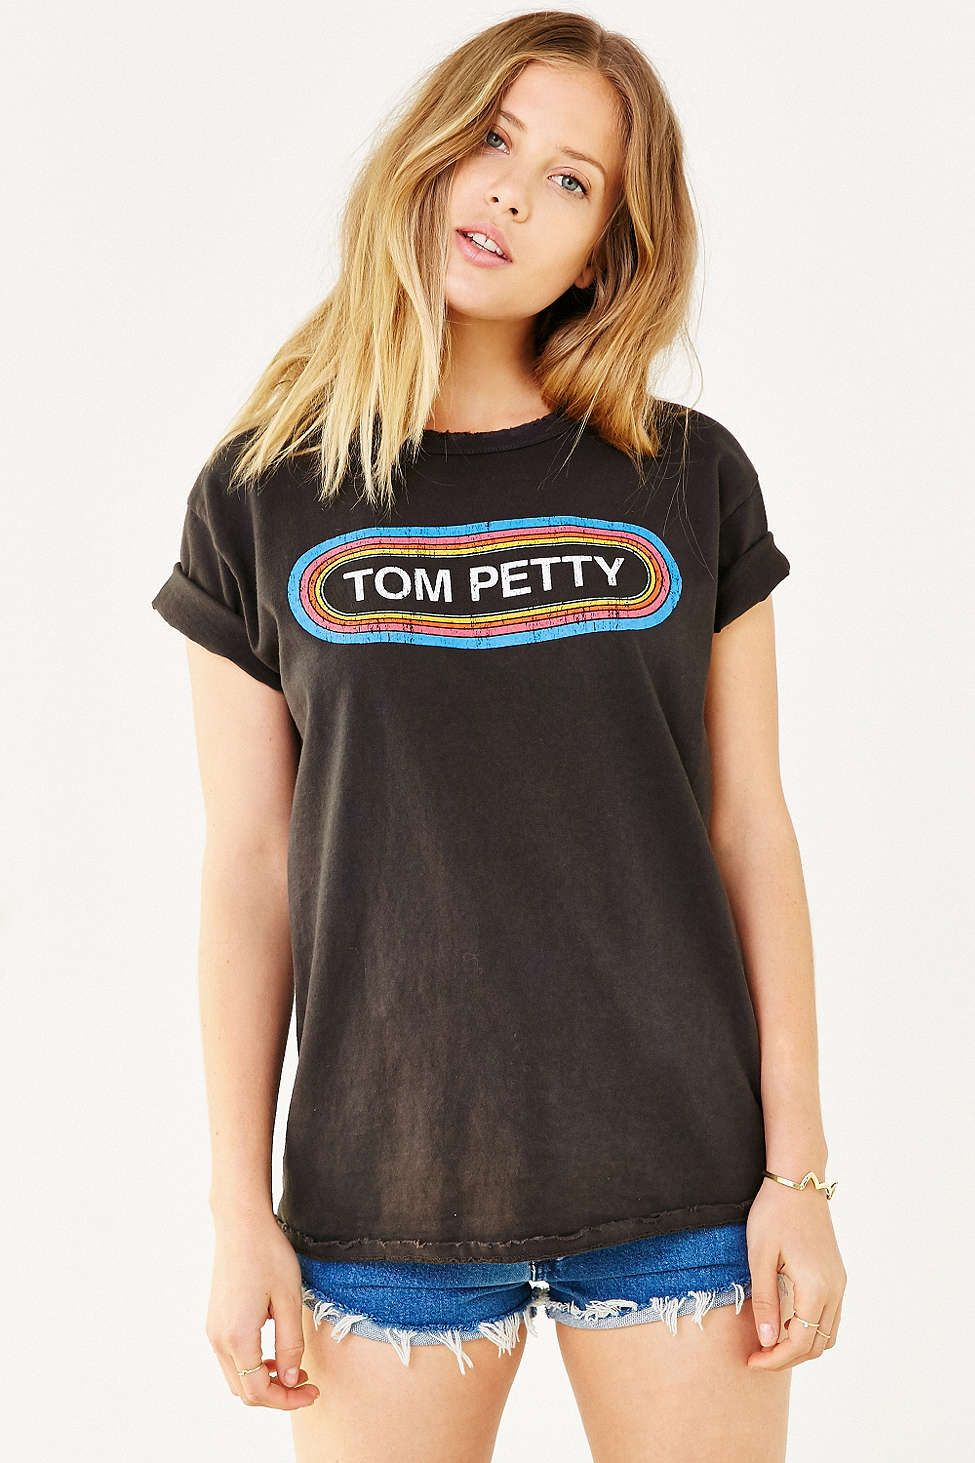 dd5a01c6 Midnight Rider Tom Petty Tee #UOONYOU | Outfit inspirations. in 2019 ...